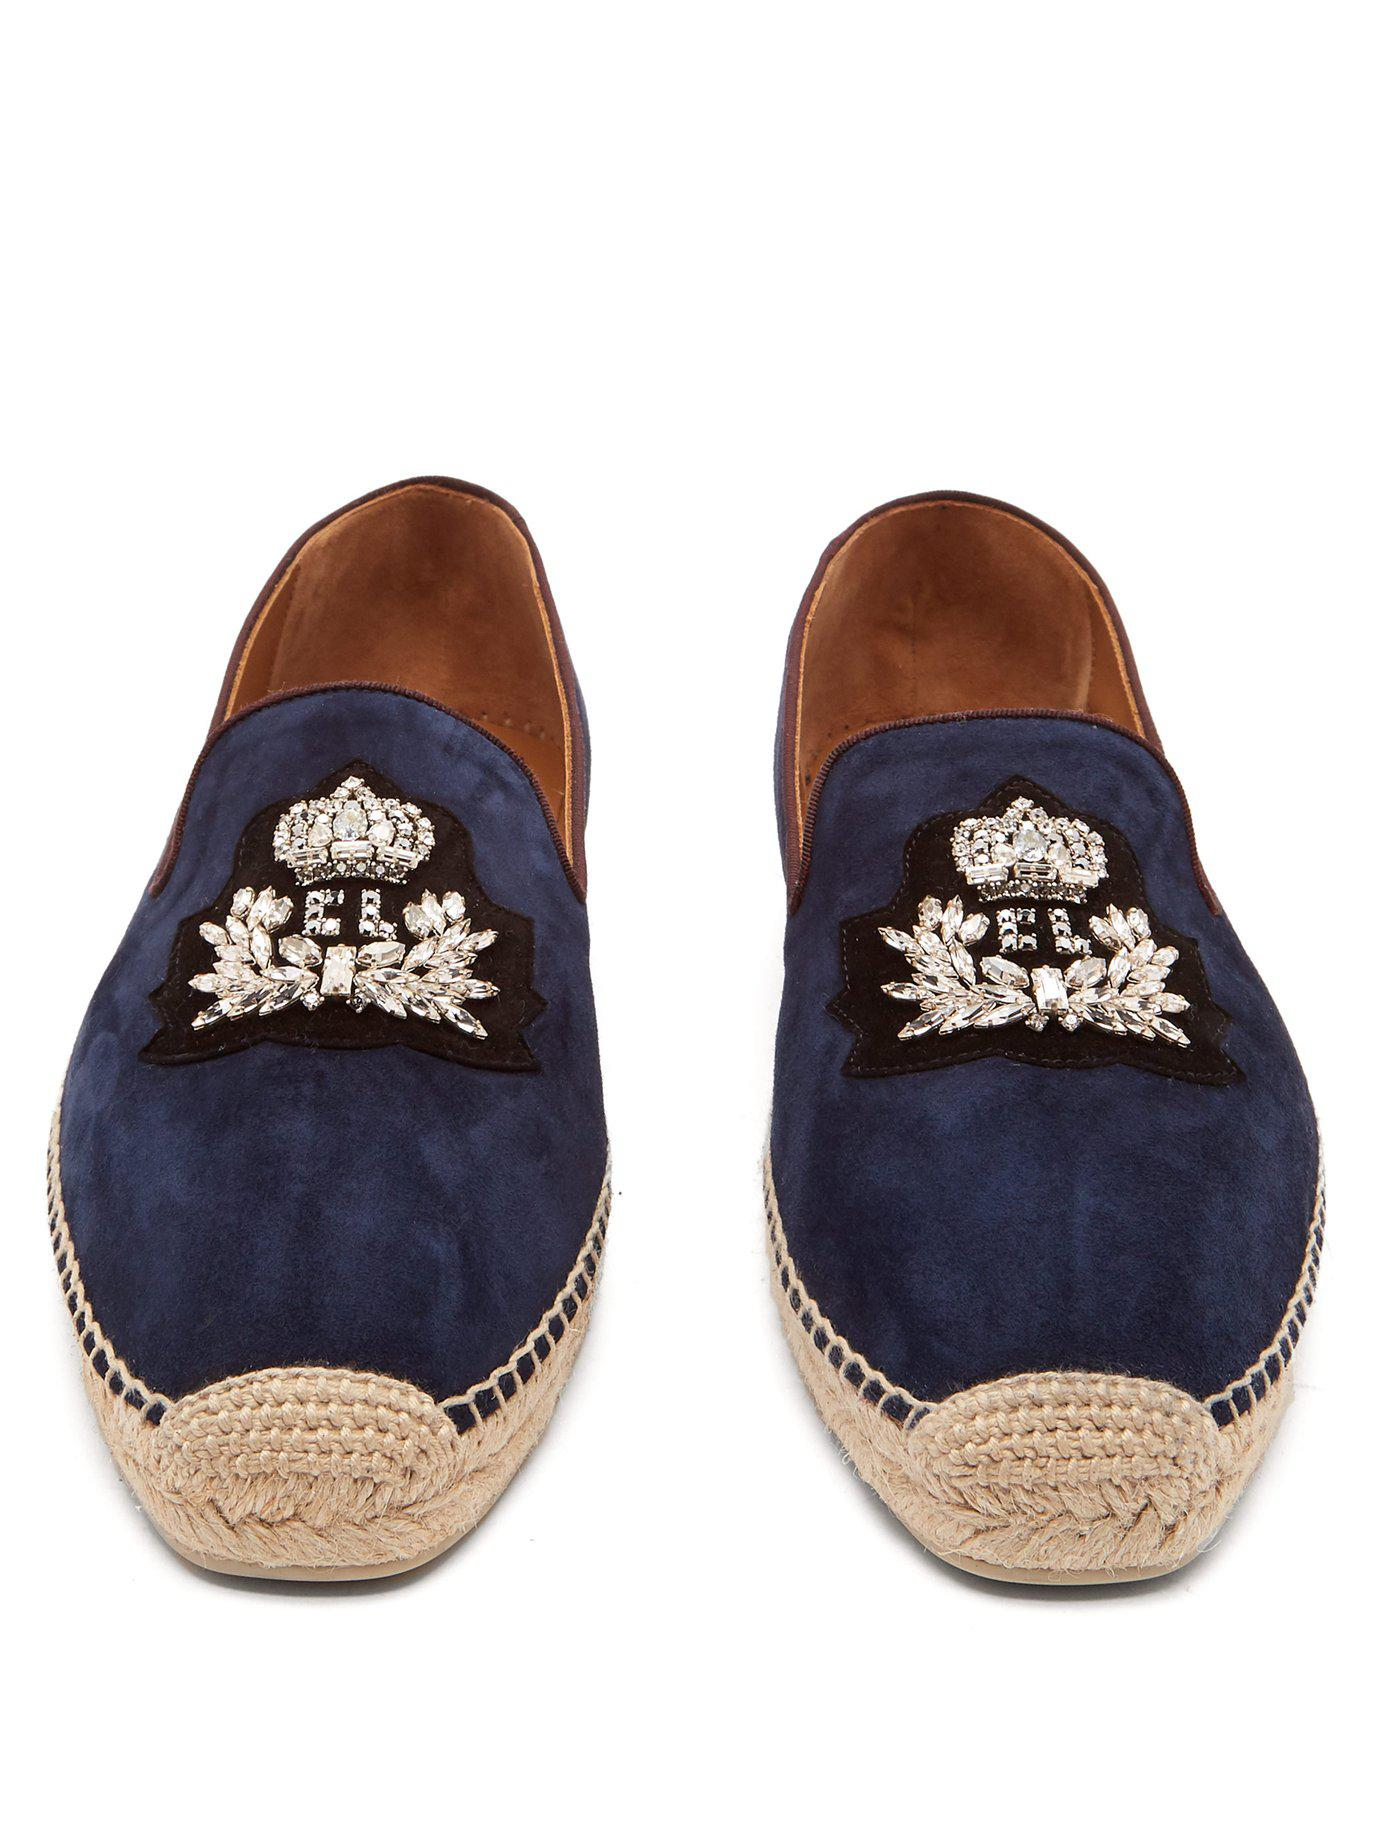 30cbc1a84 Christian Louboutin - Blue Nanou Zardozi Crest Suede Espadrilles for Men -  Lyst. View fullscreen